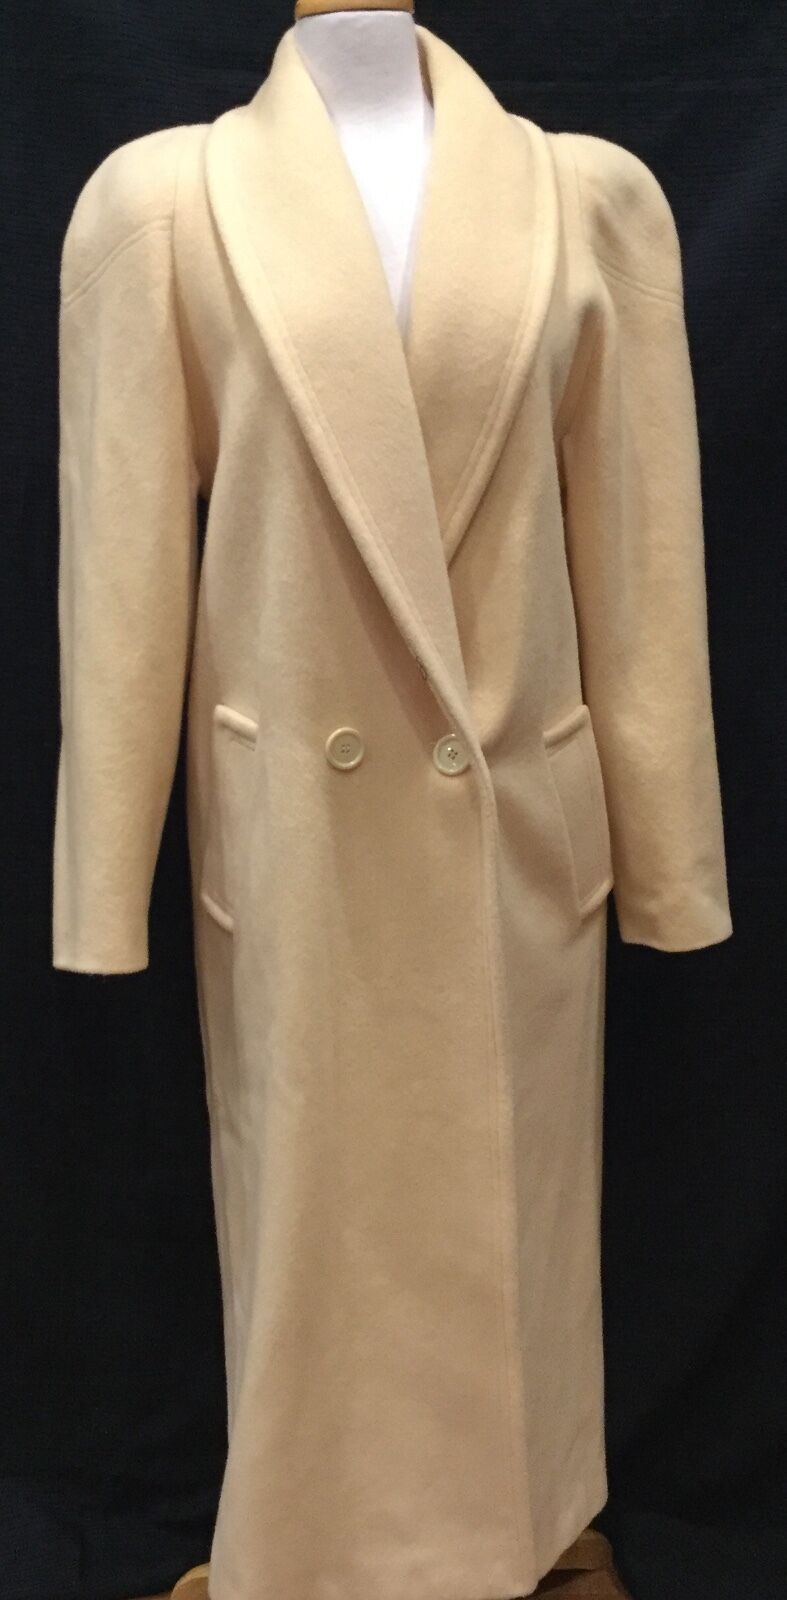 Butter gold Ivory Long Dress Coat Sz 8 100%Wool Lined Double Breasted